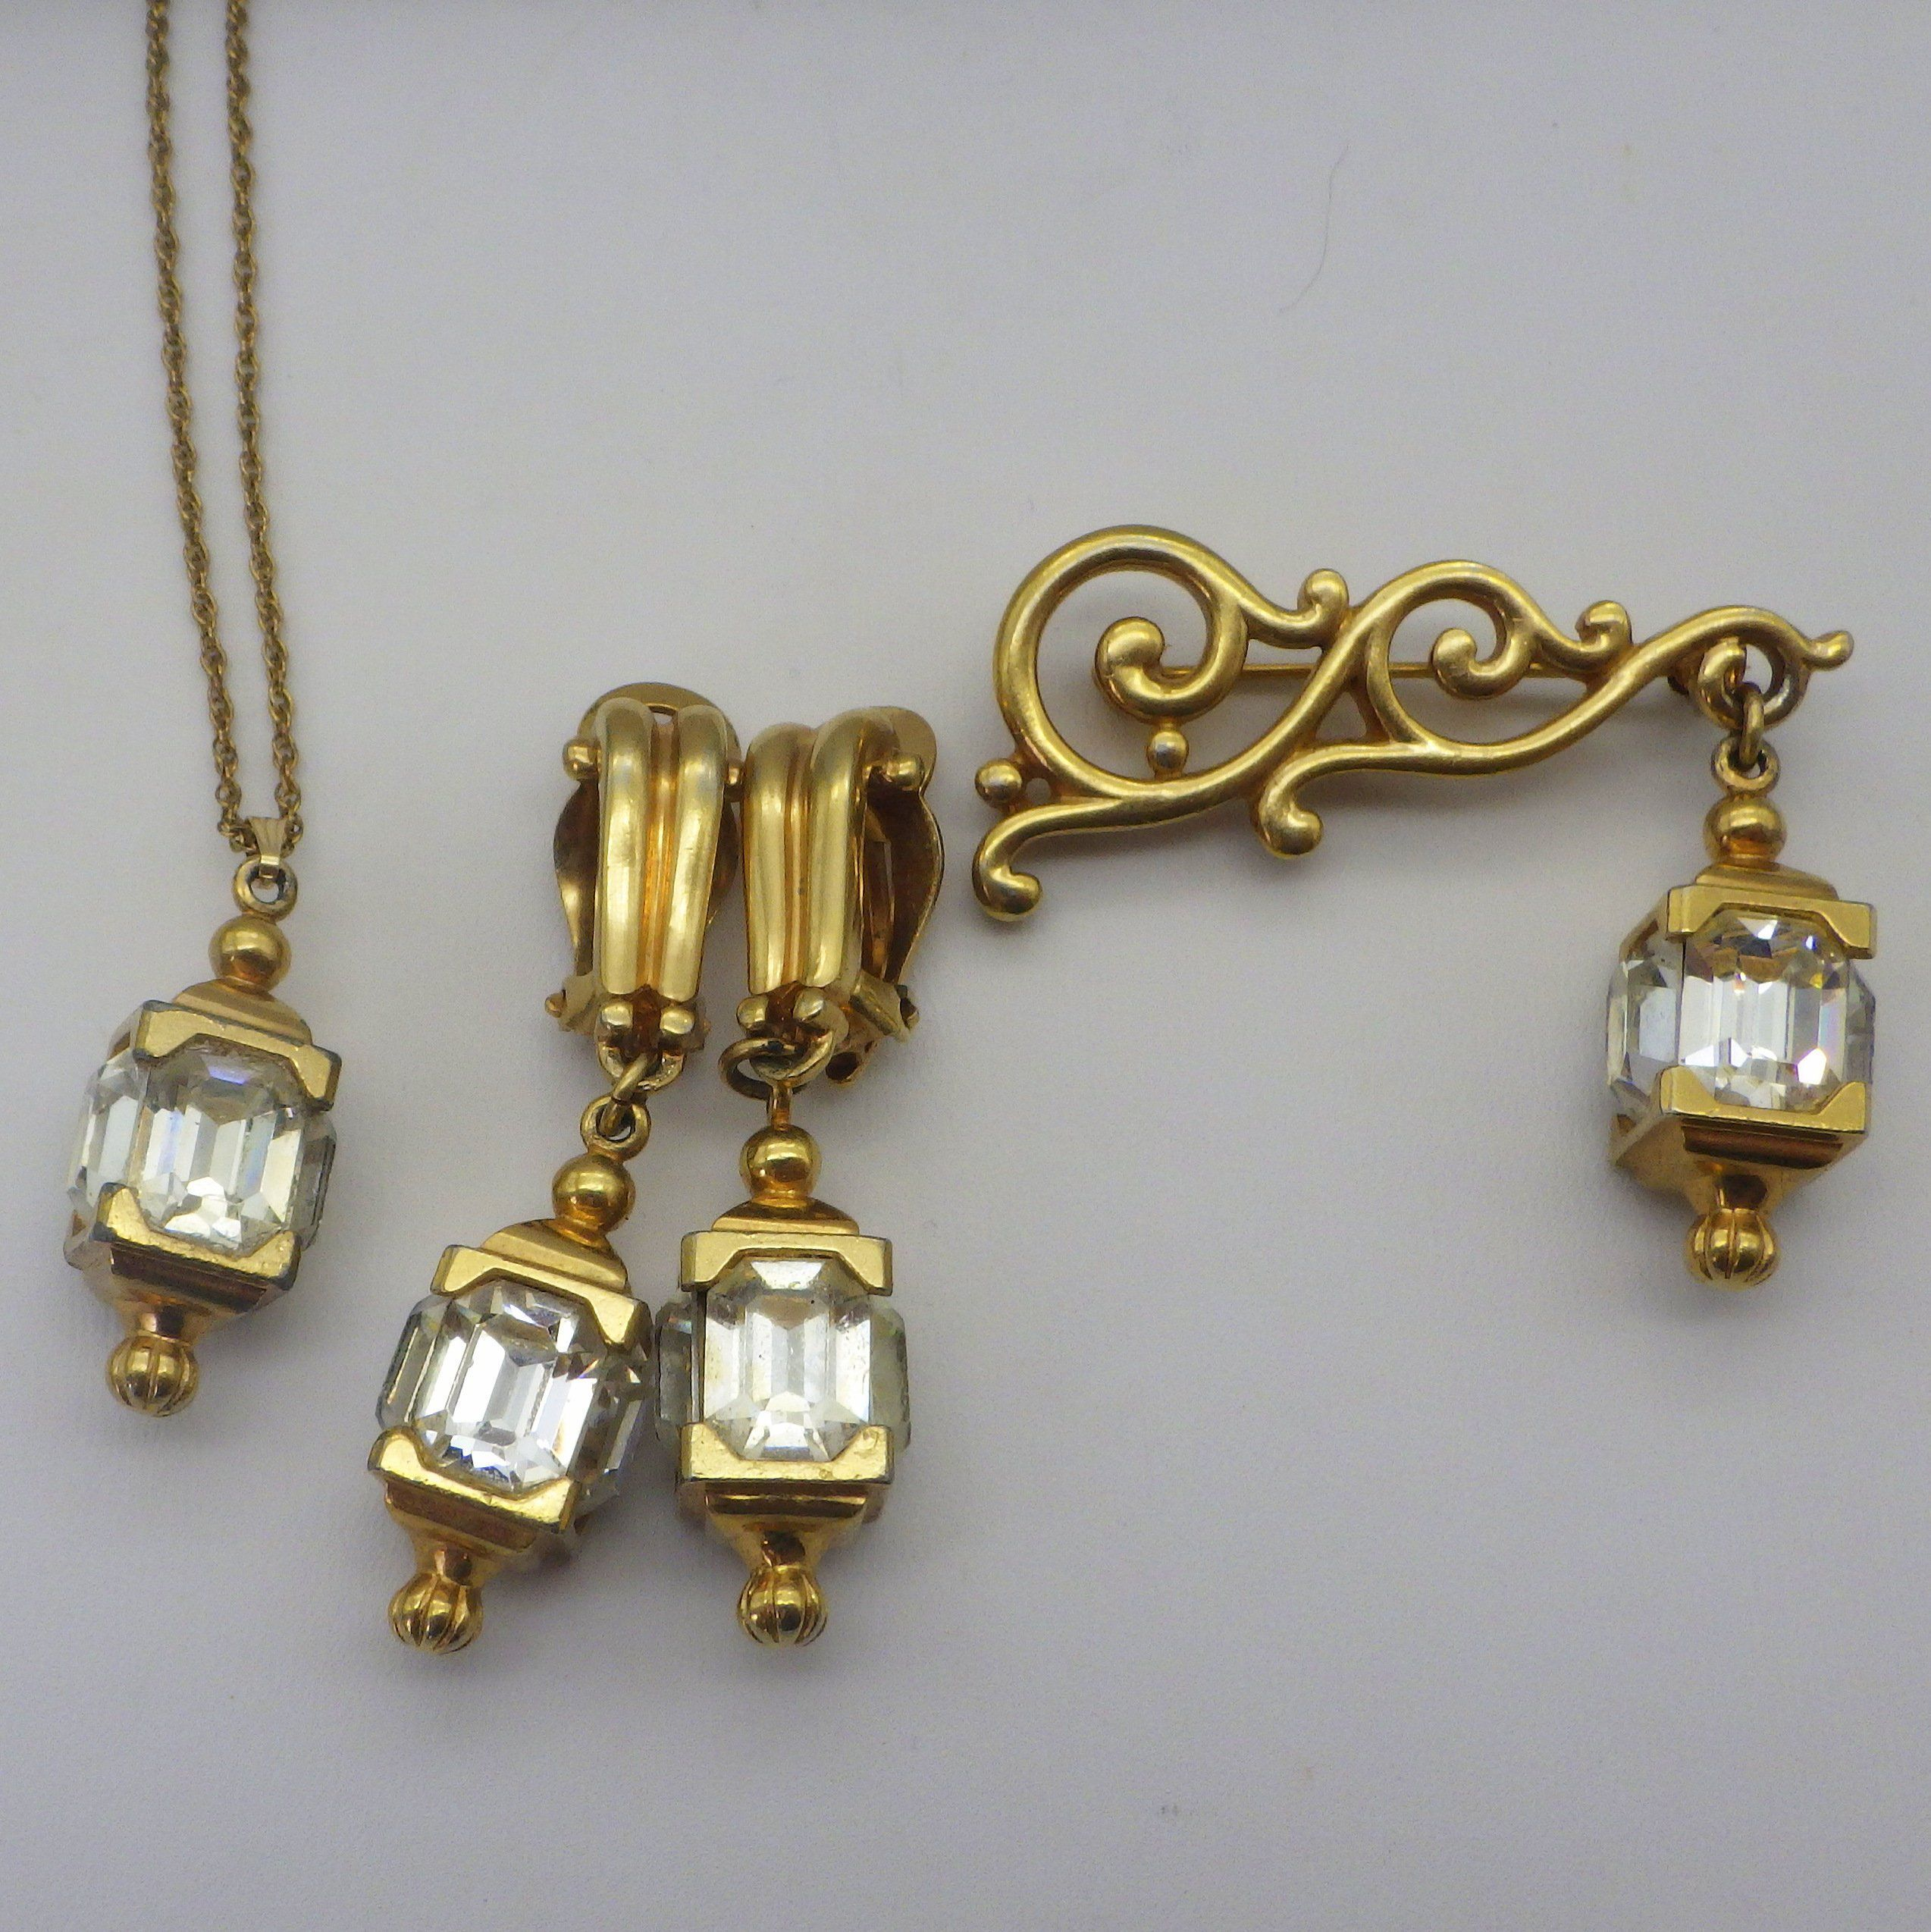 Vintage pennino jewelry set earrings brooch pendant necklace